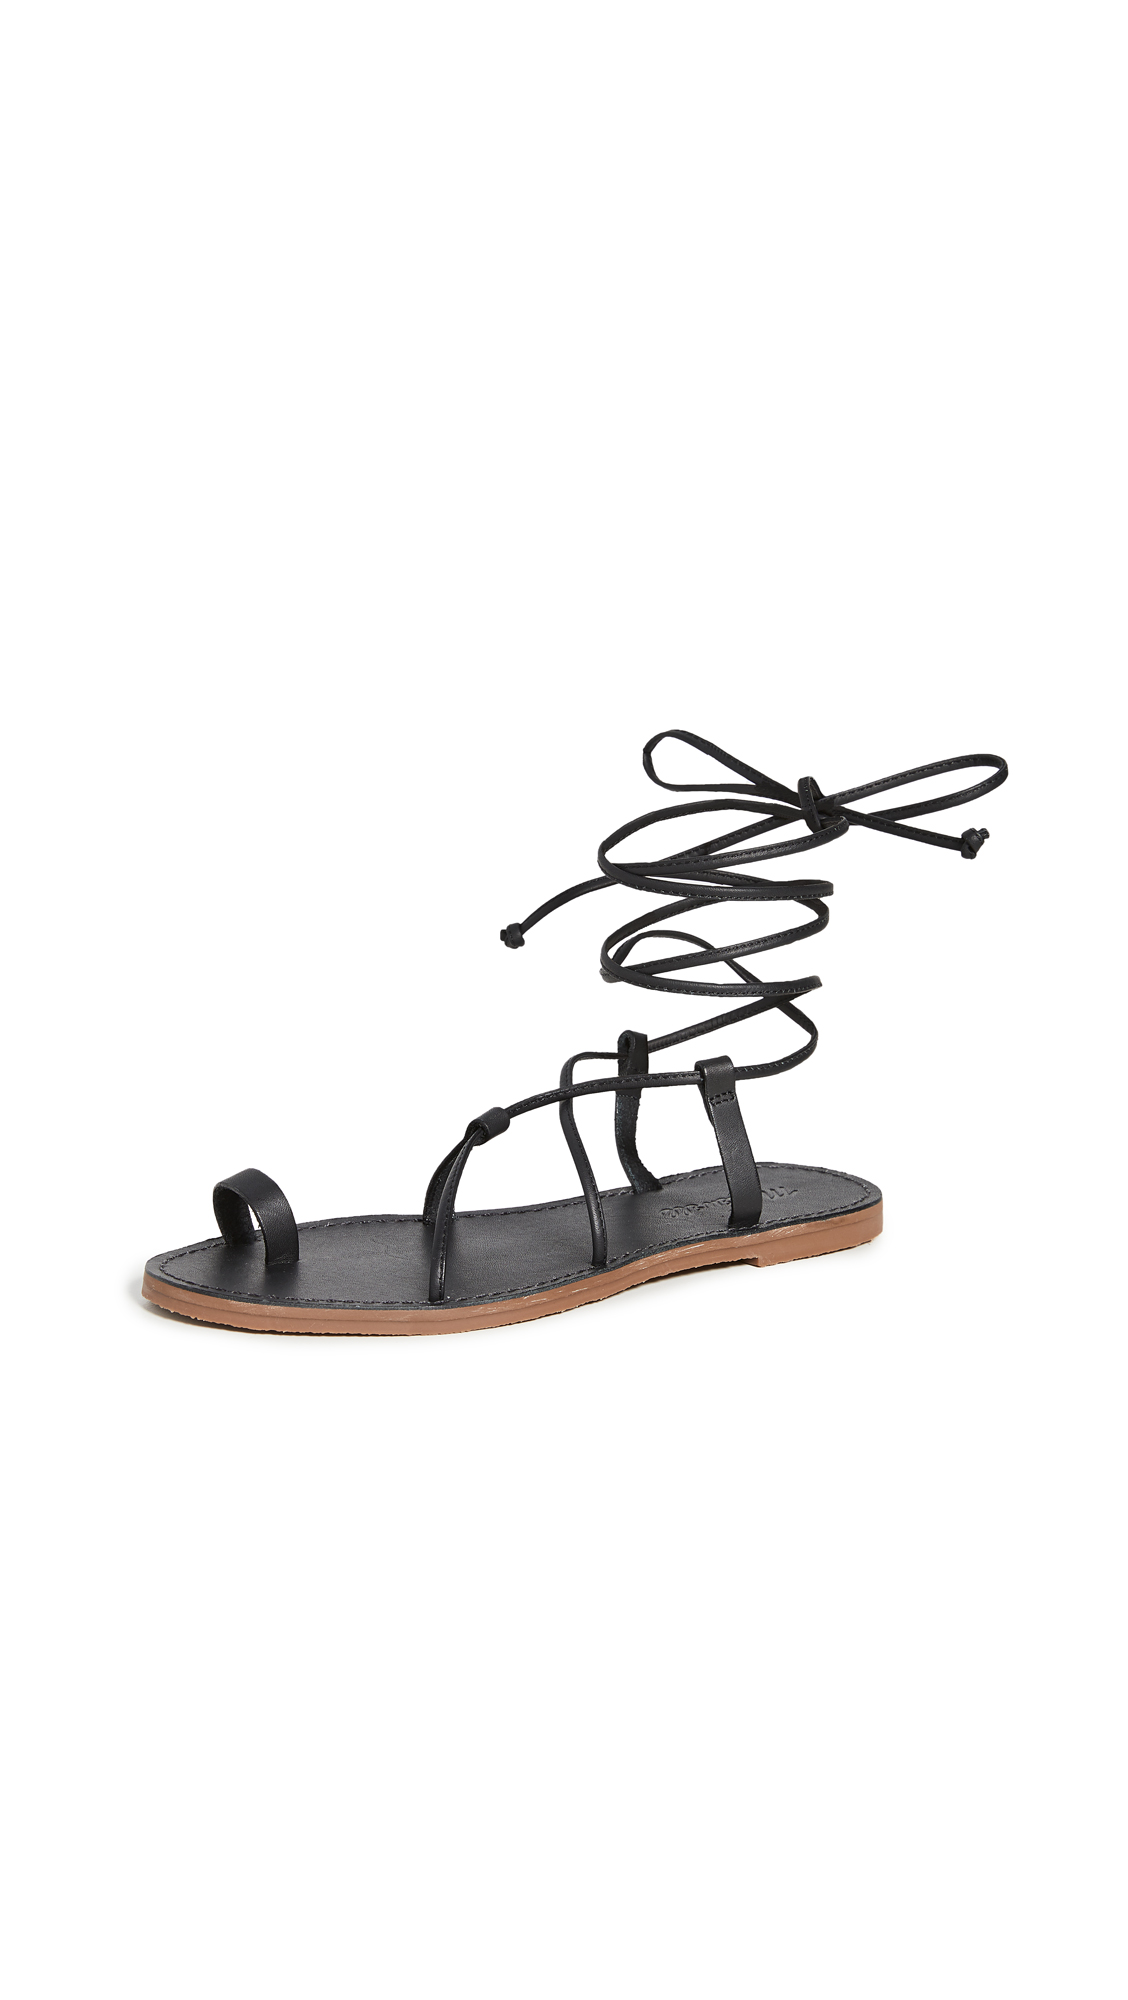 Buy Madewell Ronda Boardwalk Lace Up Sandals online, shop Madewell